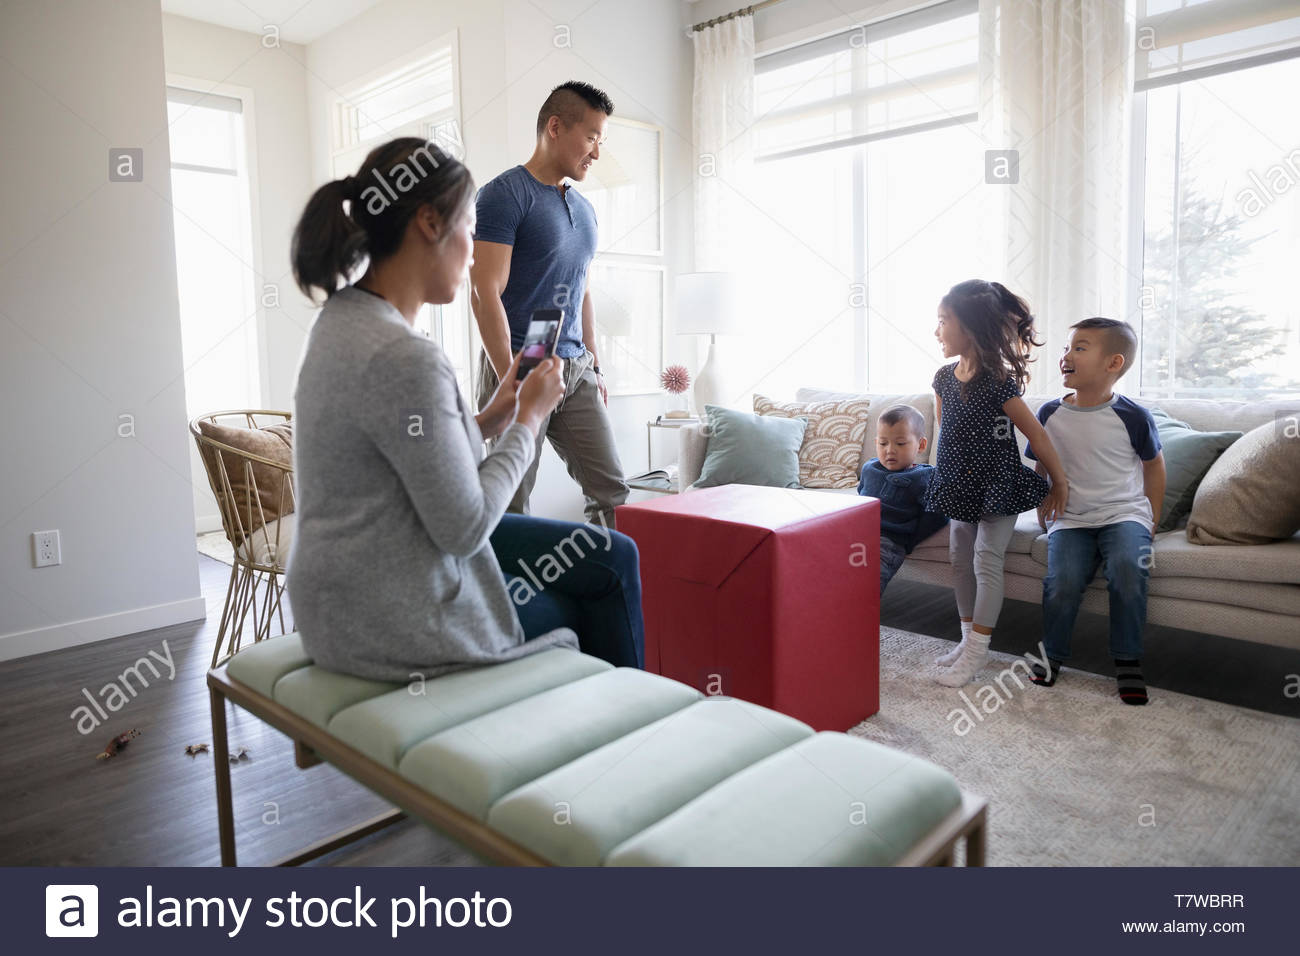 Excited children waiting to open large gift - Stock Image